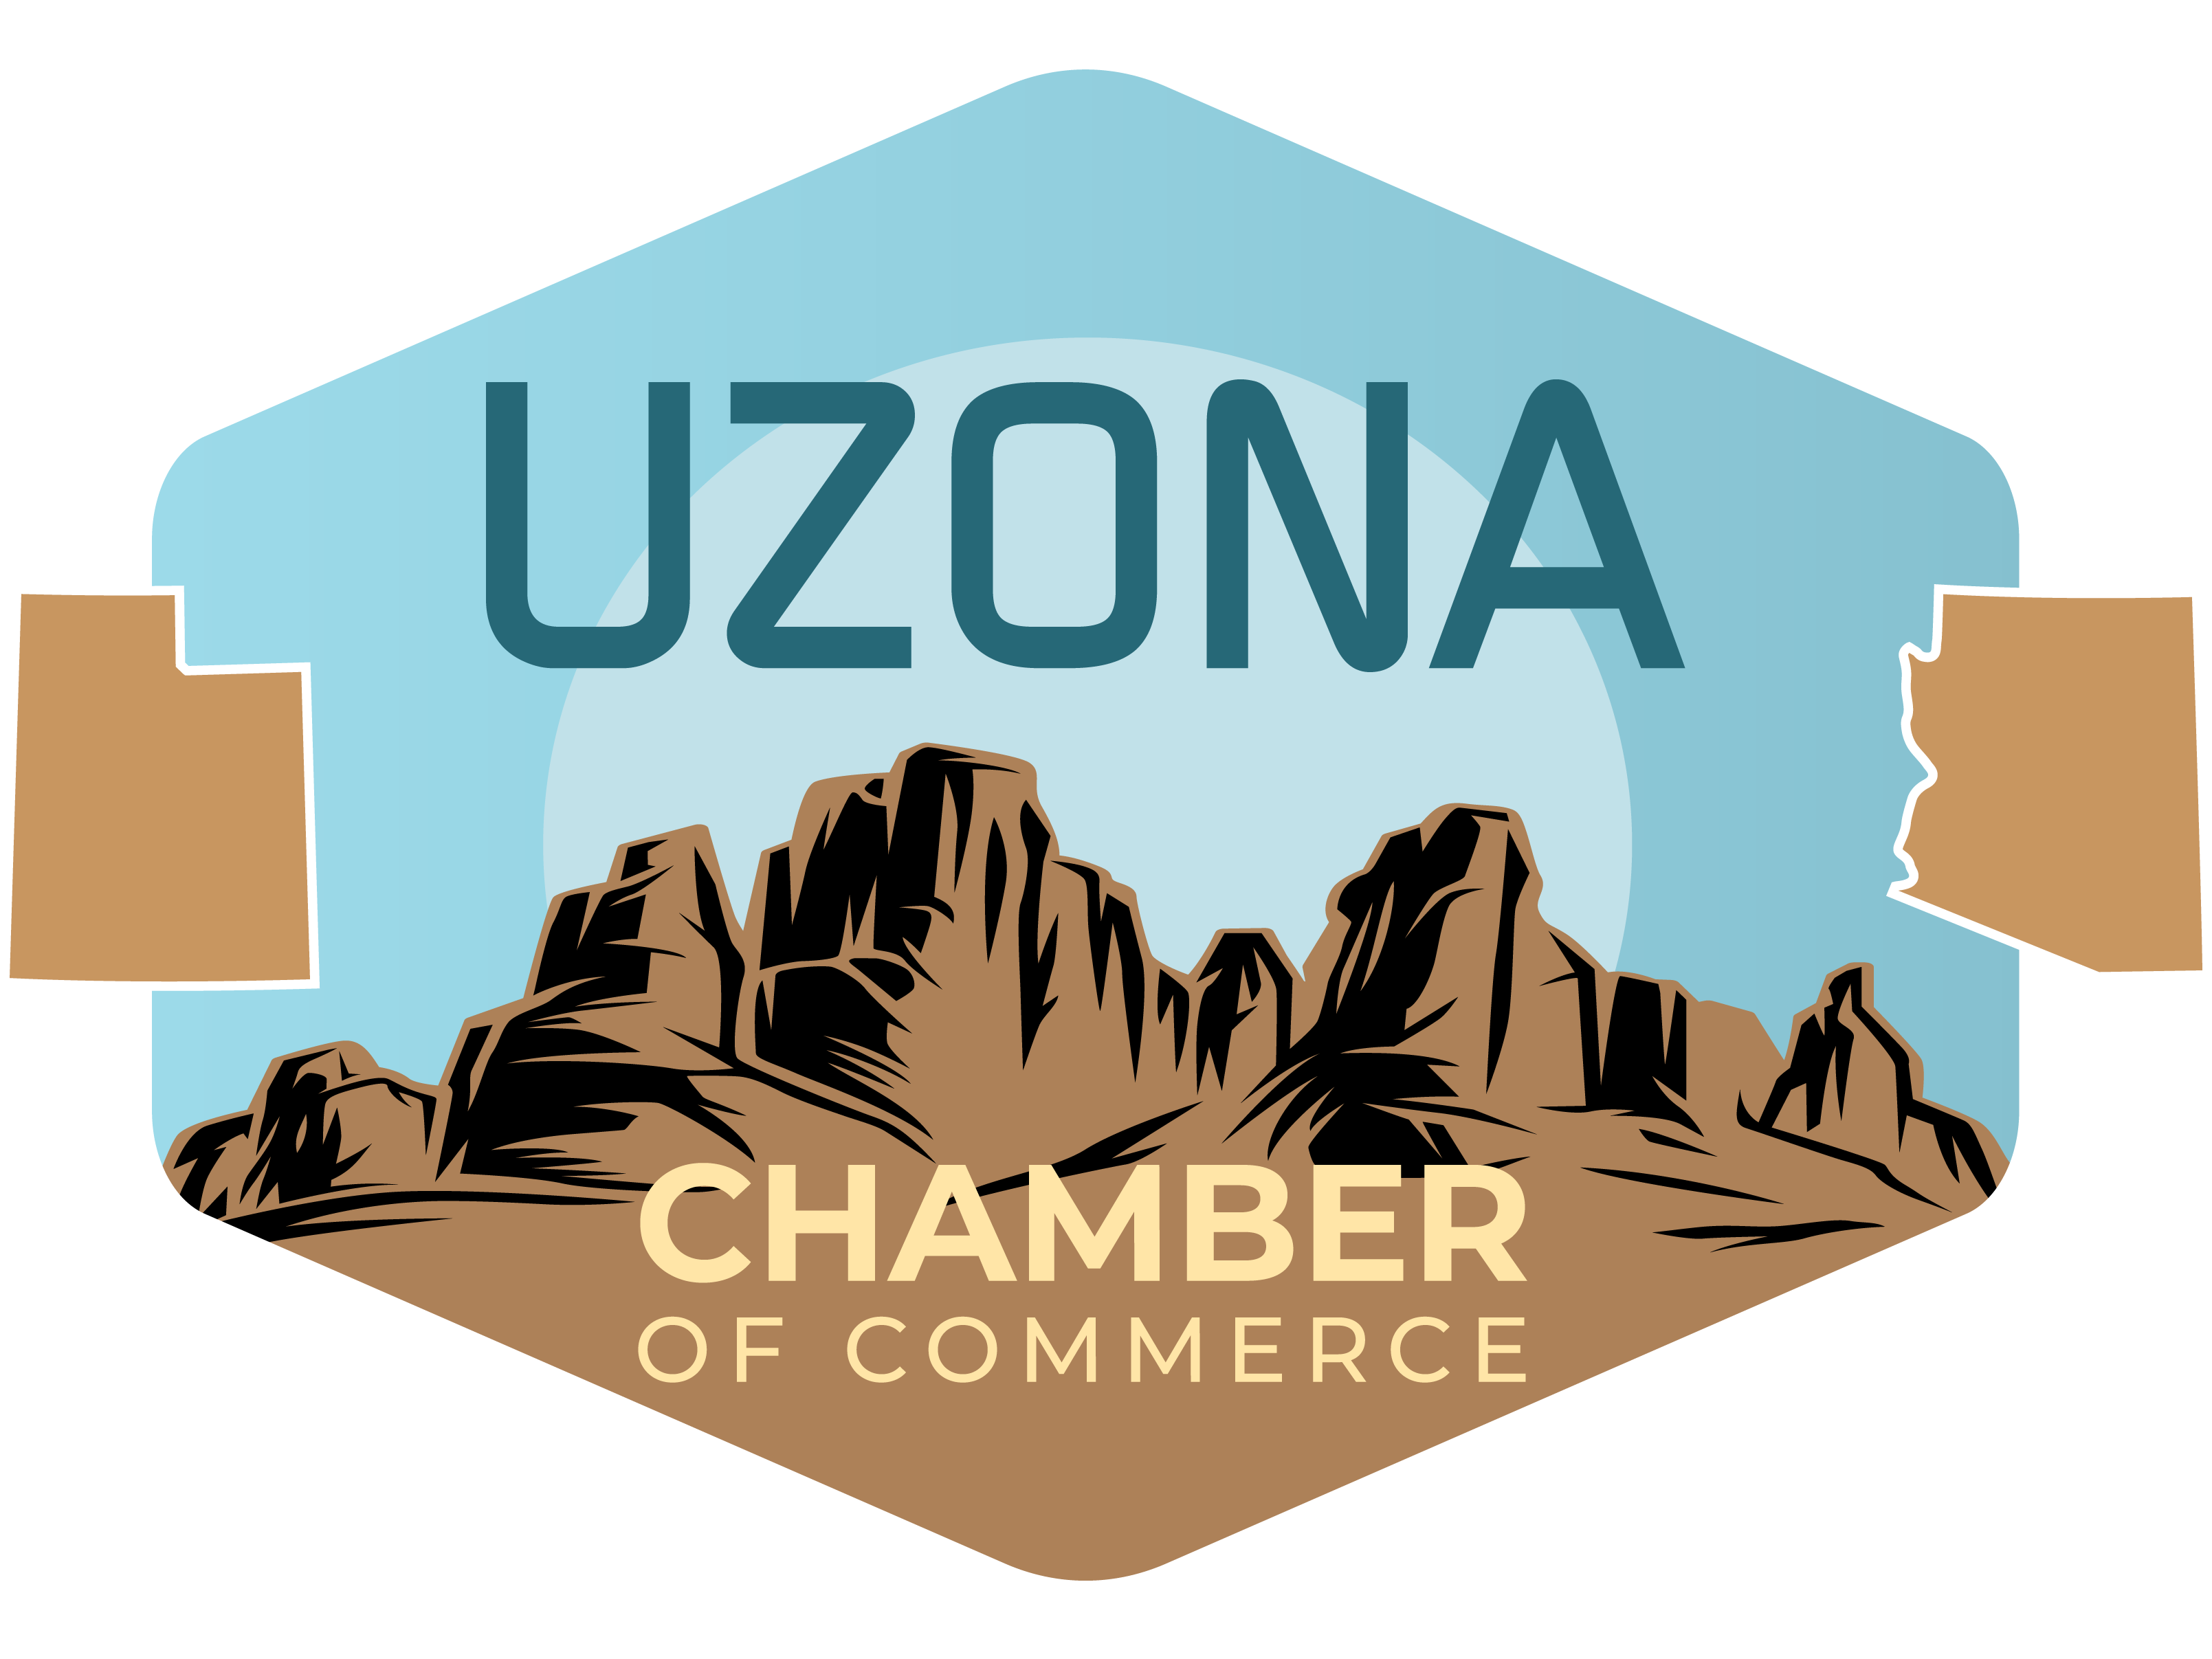 UZONA Chamber of Commerce